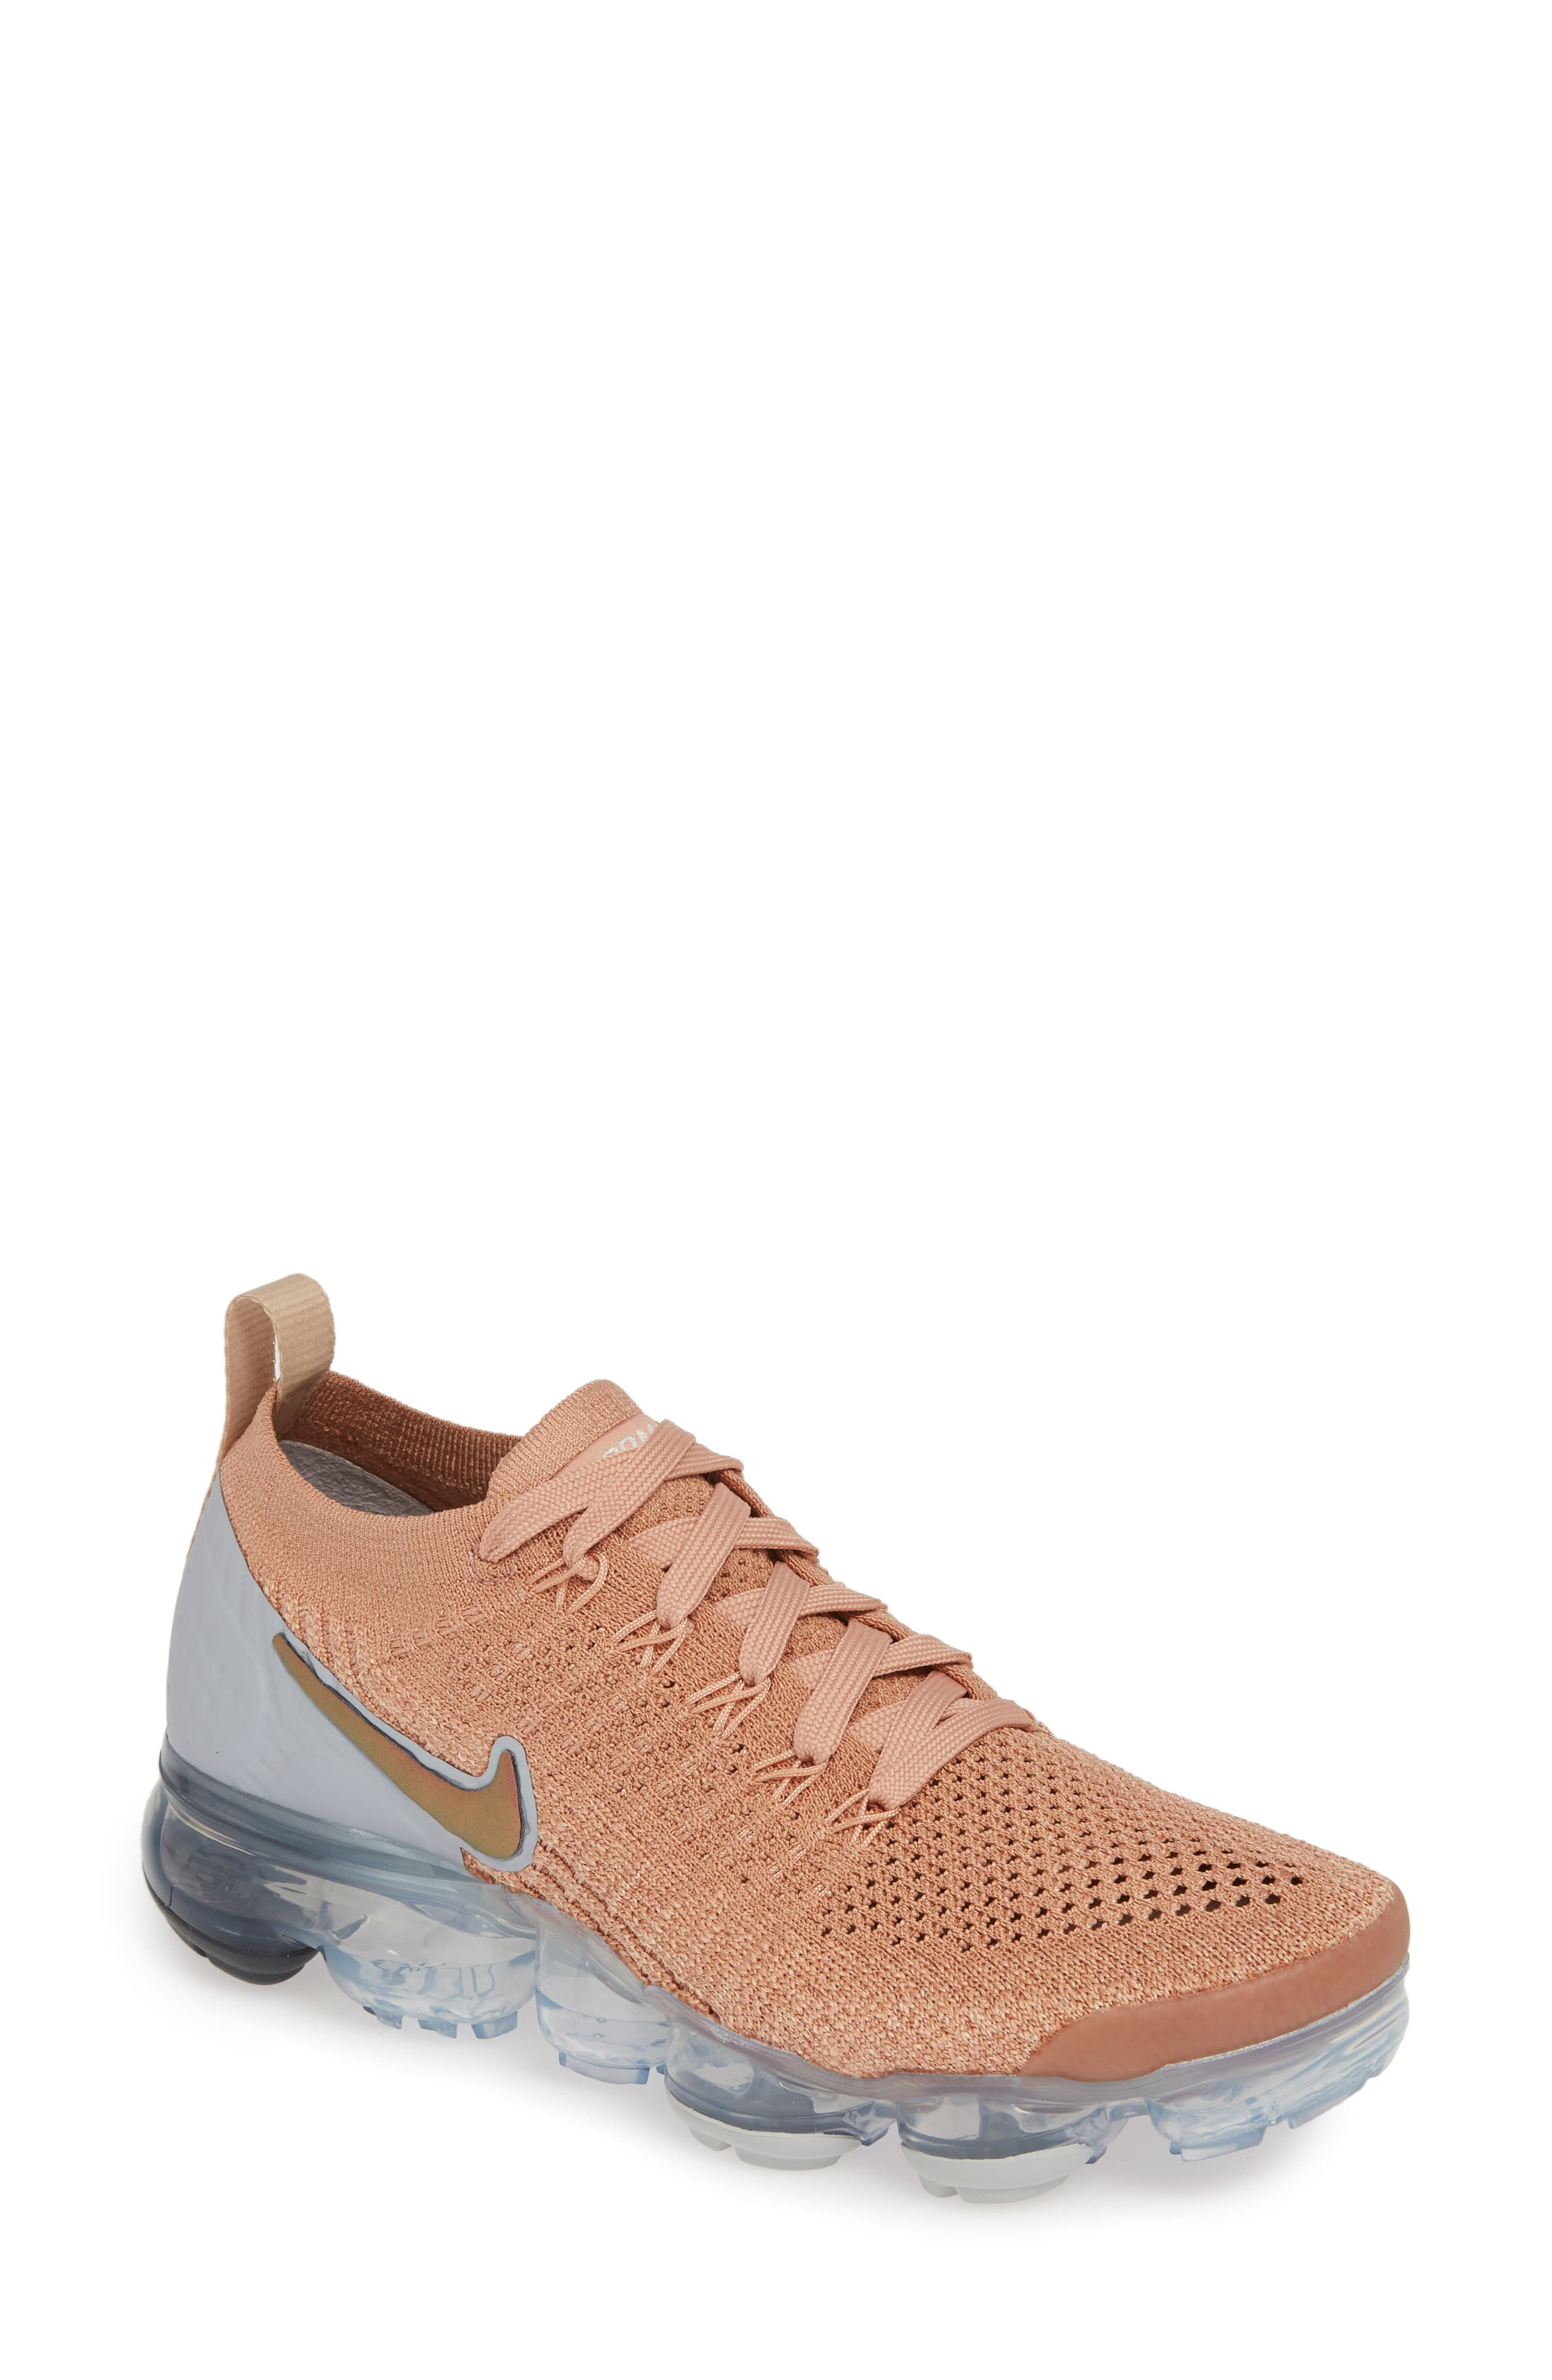 NIKE Air VaporMax Flyknit 2 Running Shoe, Main, color, ROSE GOLD/ BIO BEIGE